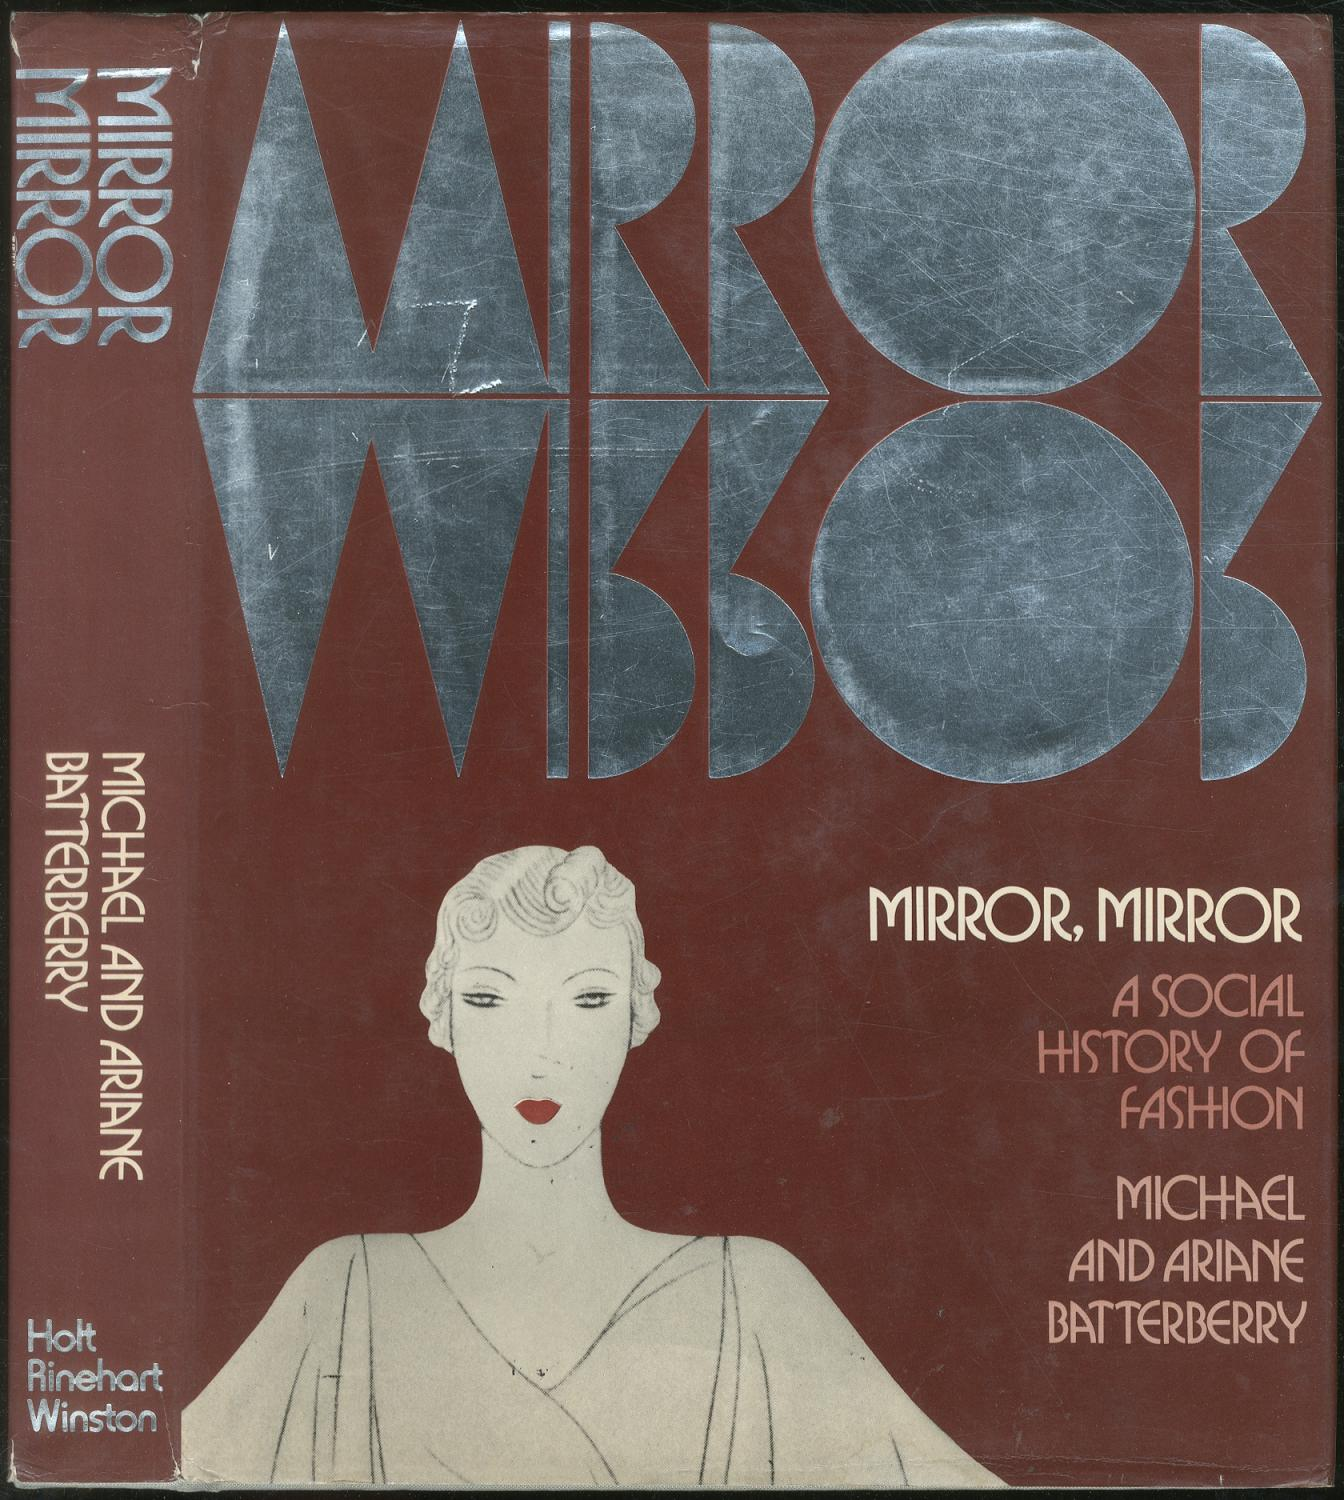 Mirror Mirror A Social History Of Fashion By Batterberry Michael And Ariane Holt Rinehart